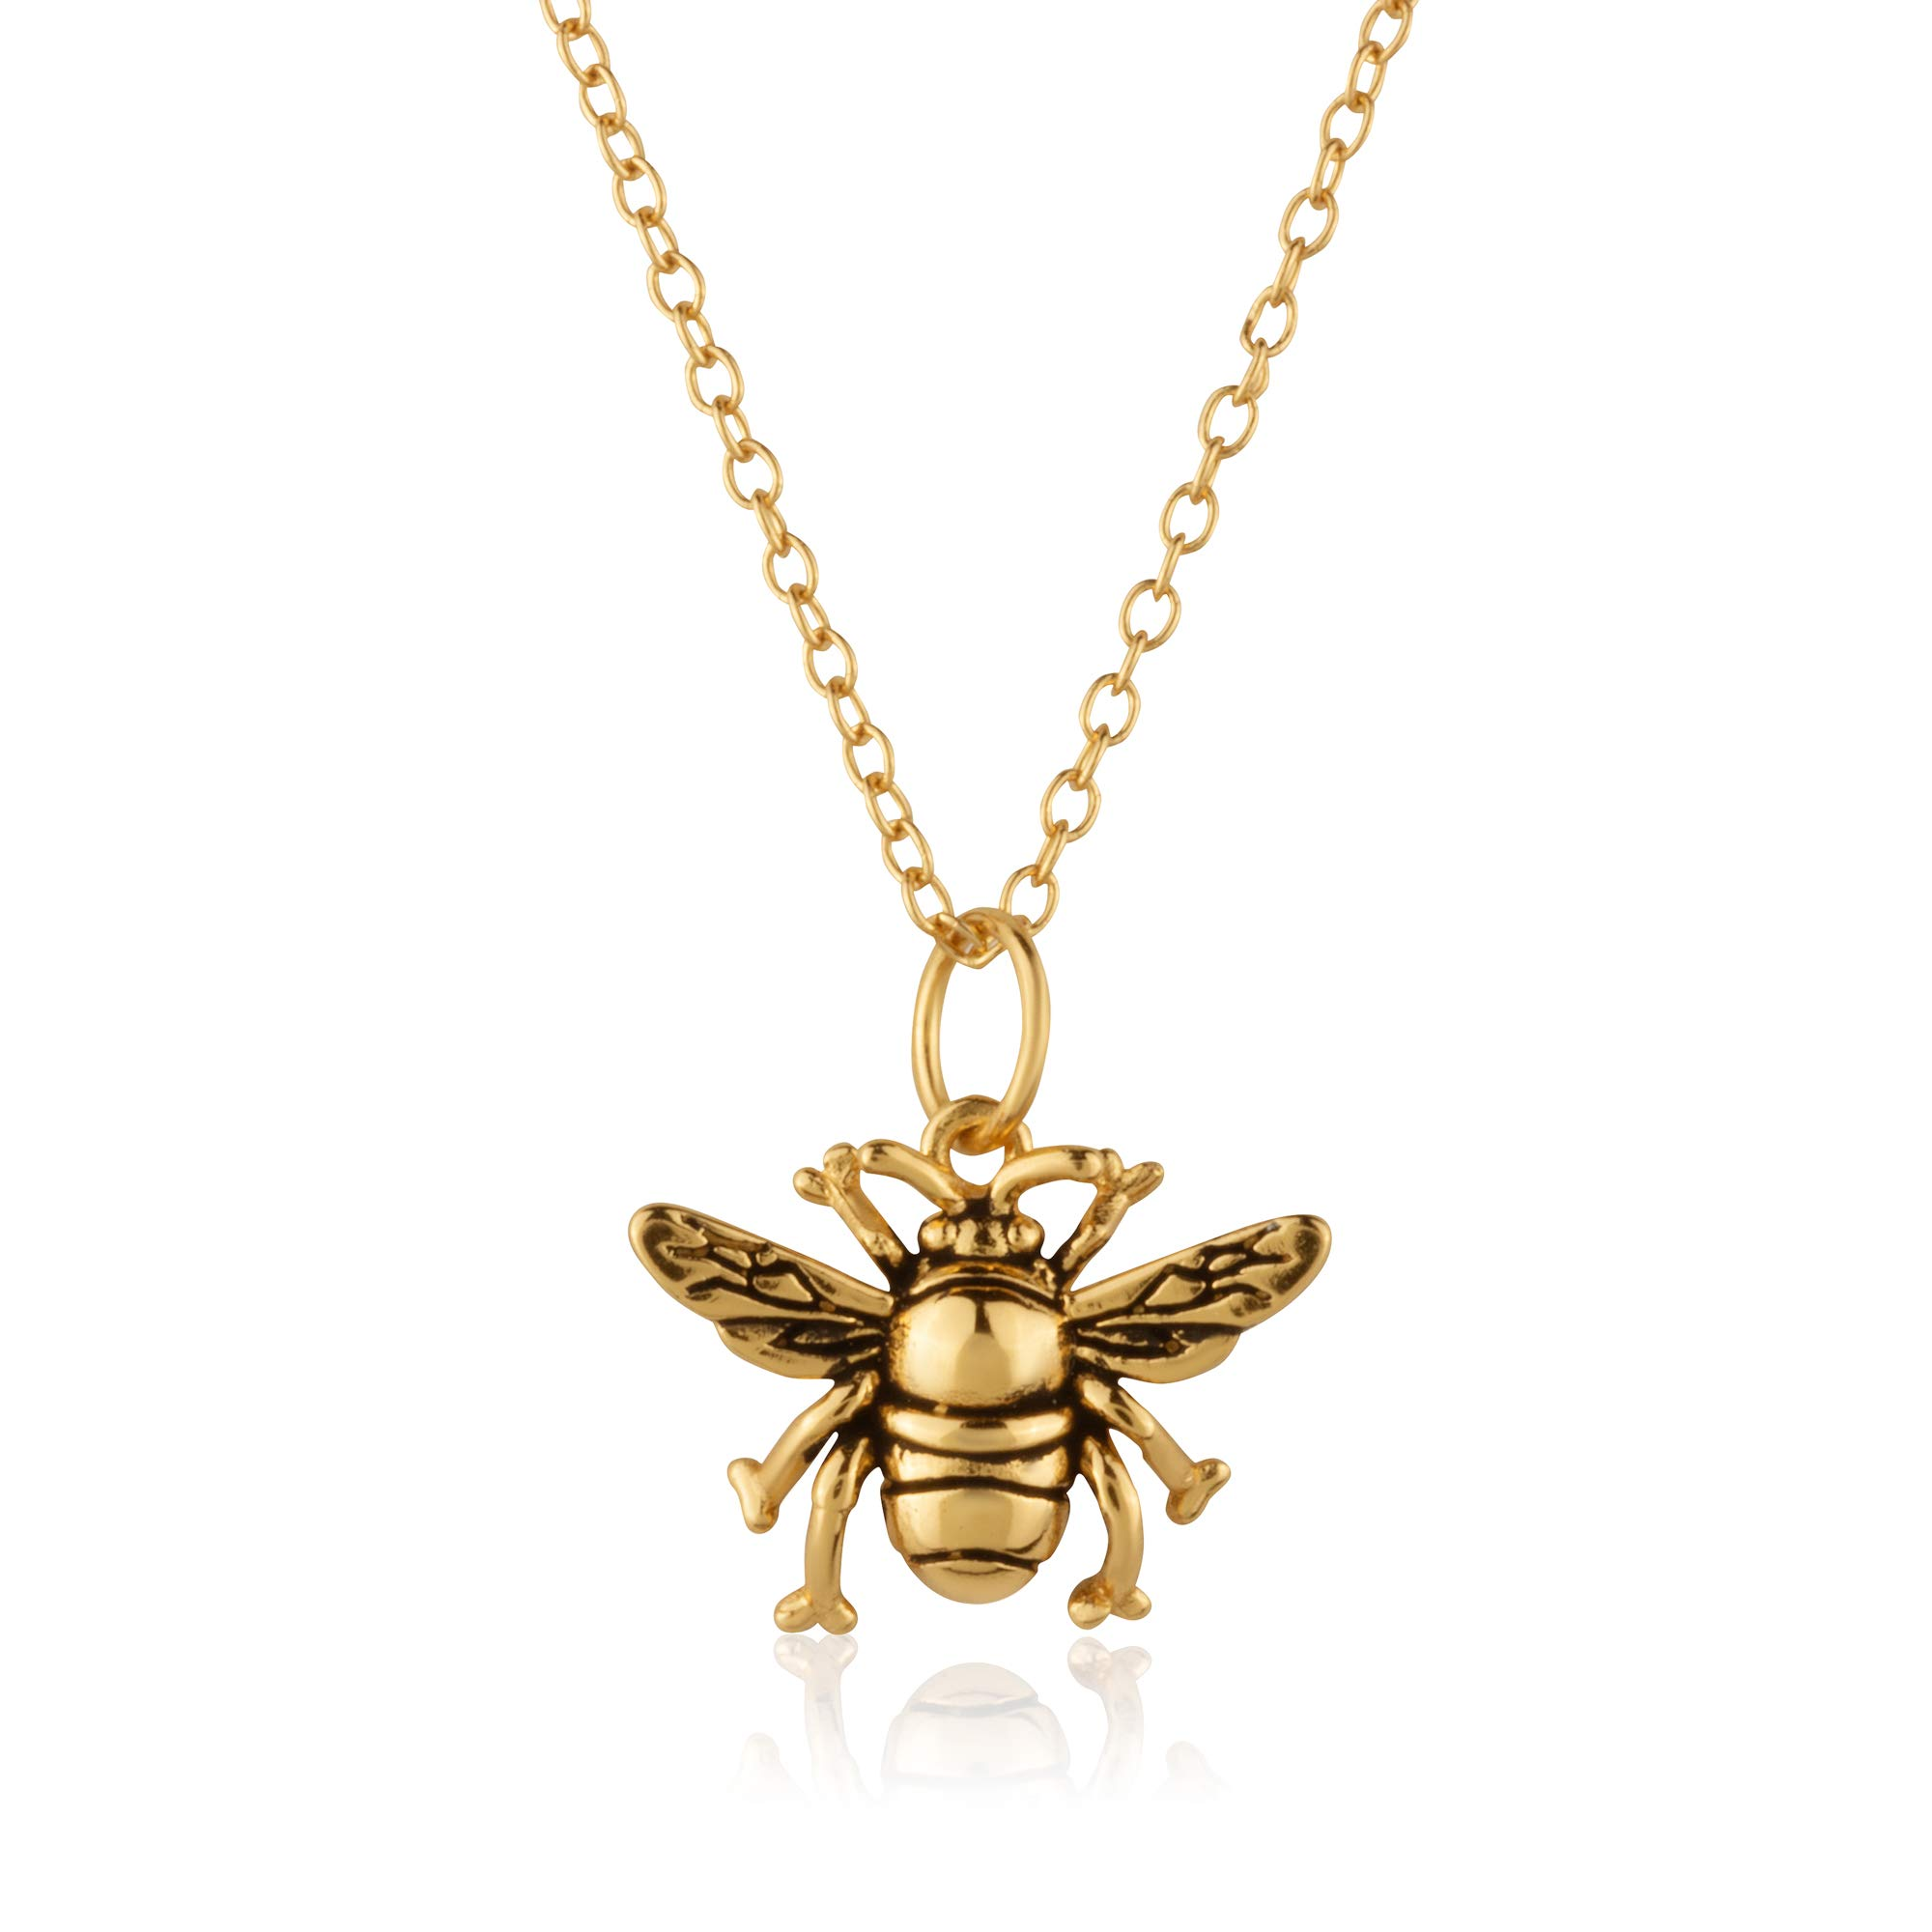 Sterling Silver 18K Yellow Gold Plated 3D Bumblebee Pendant/Charm, with 18-Inch Chain - in Beautiful Antique Brushing